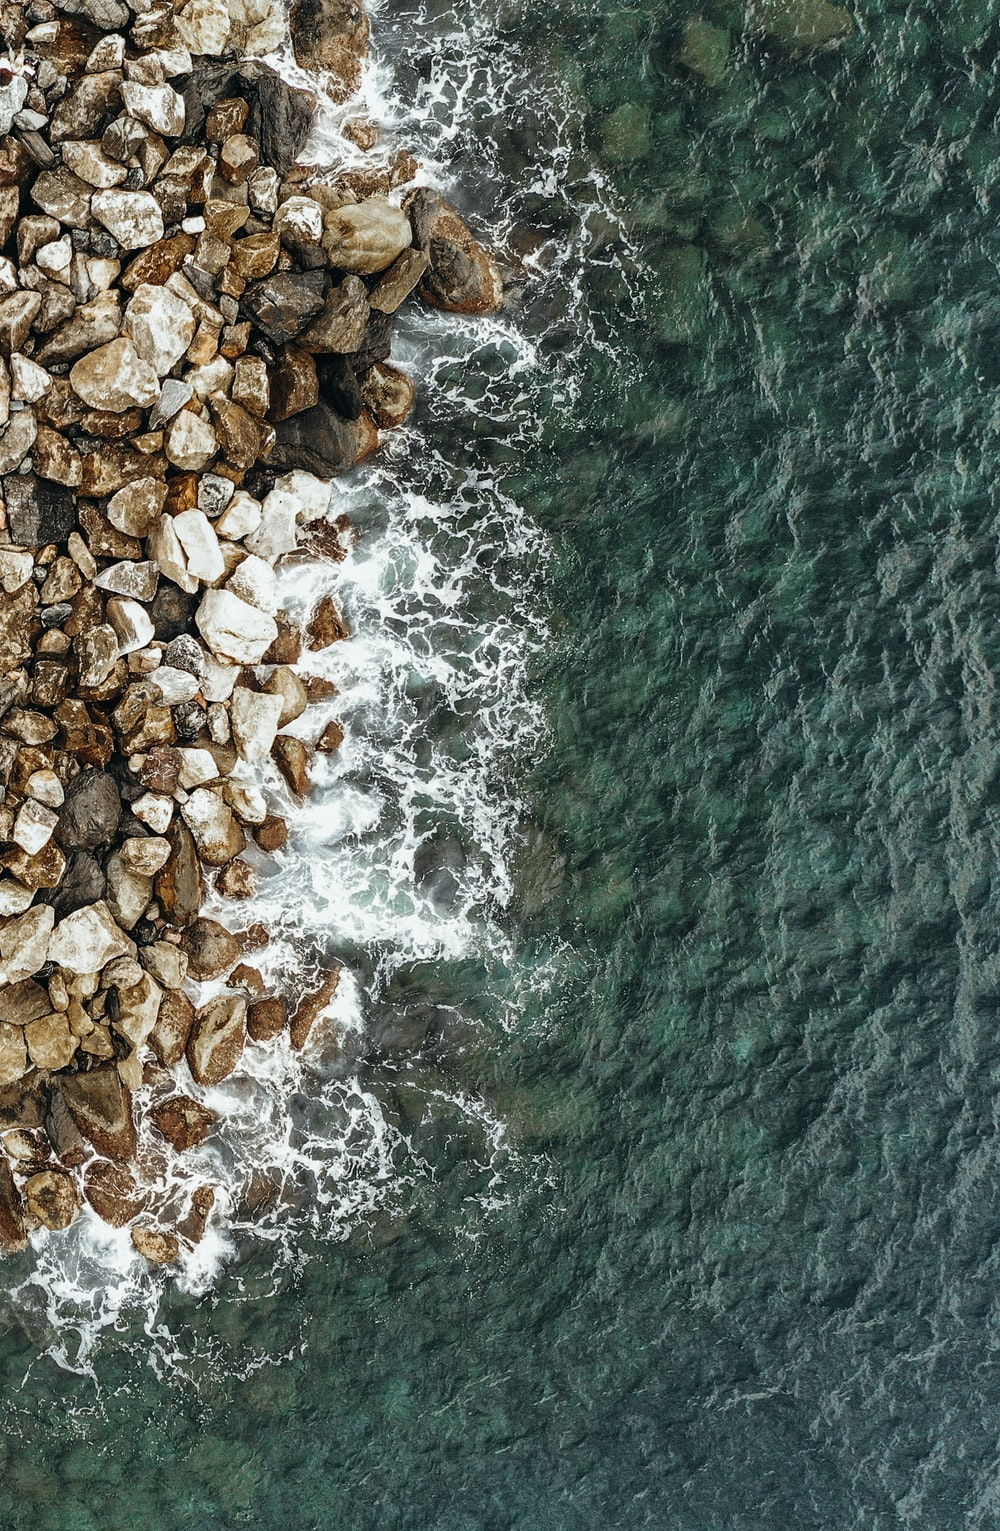 aerial photography of brown rocks near body of water during daytime